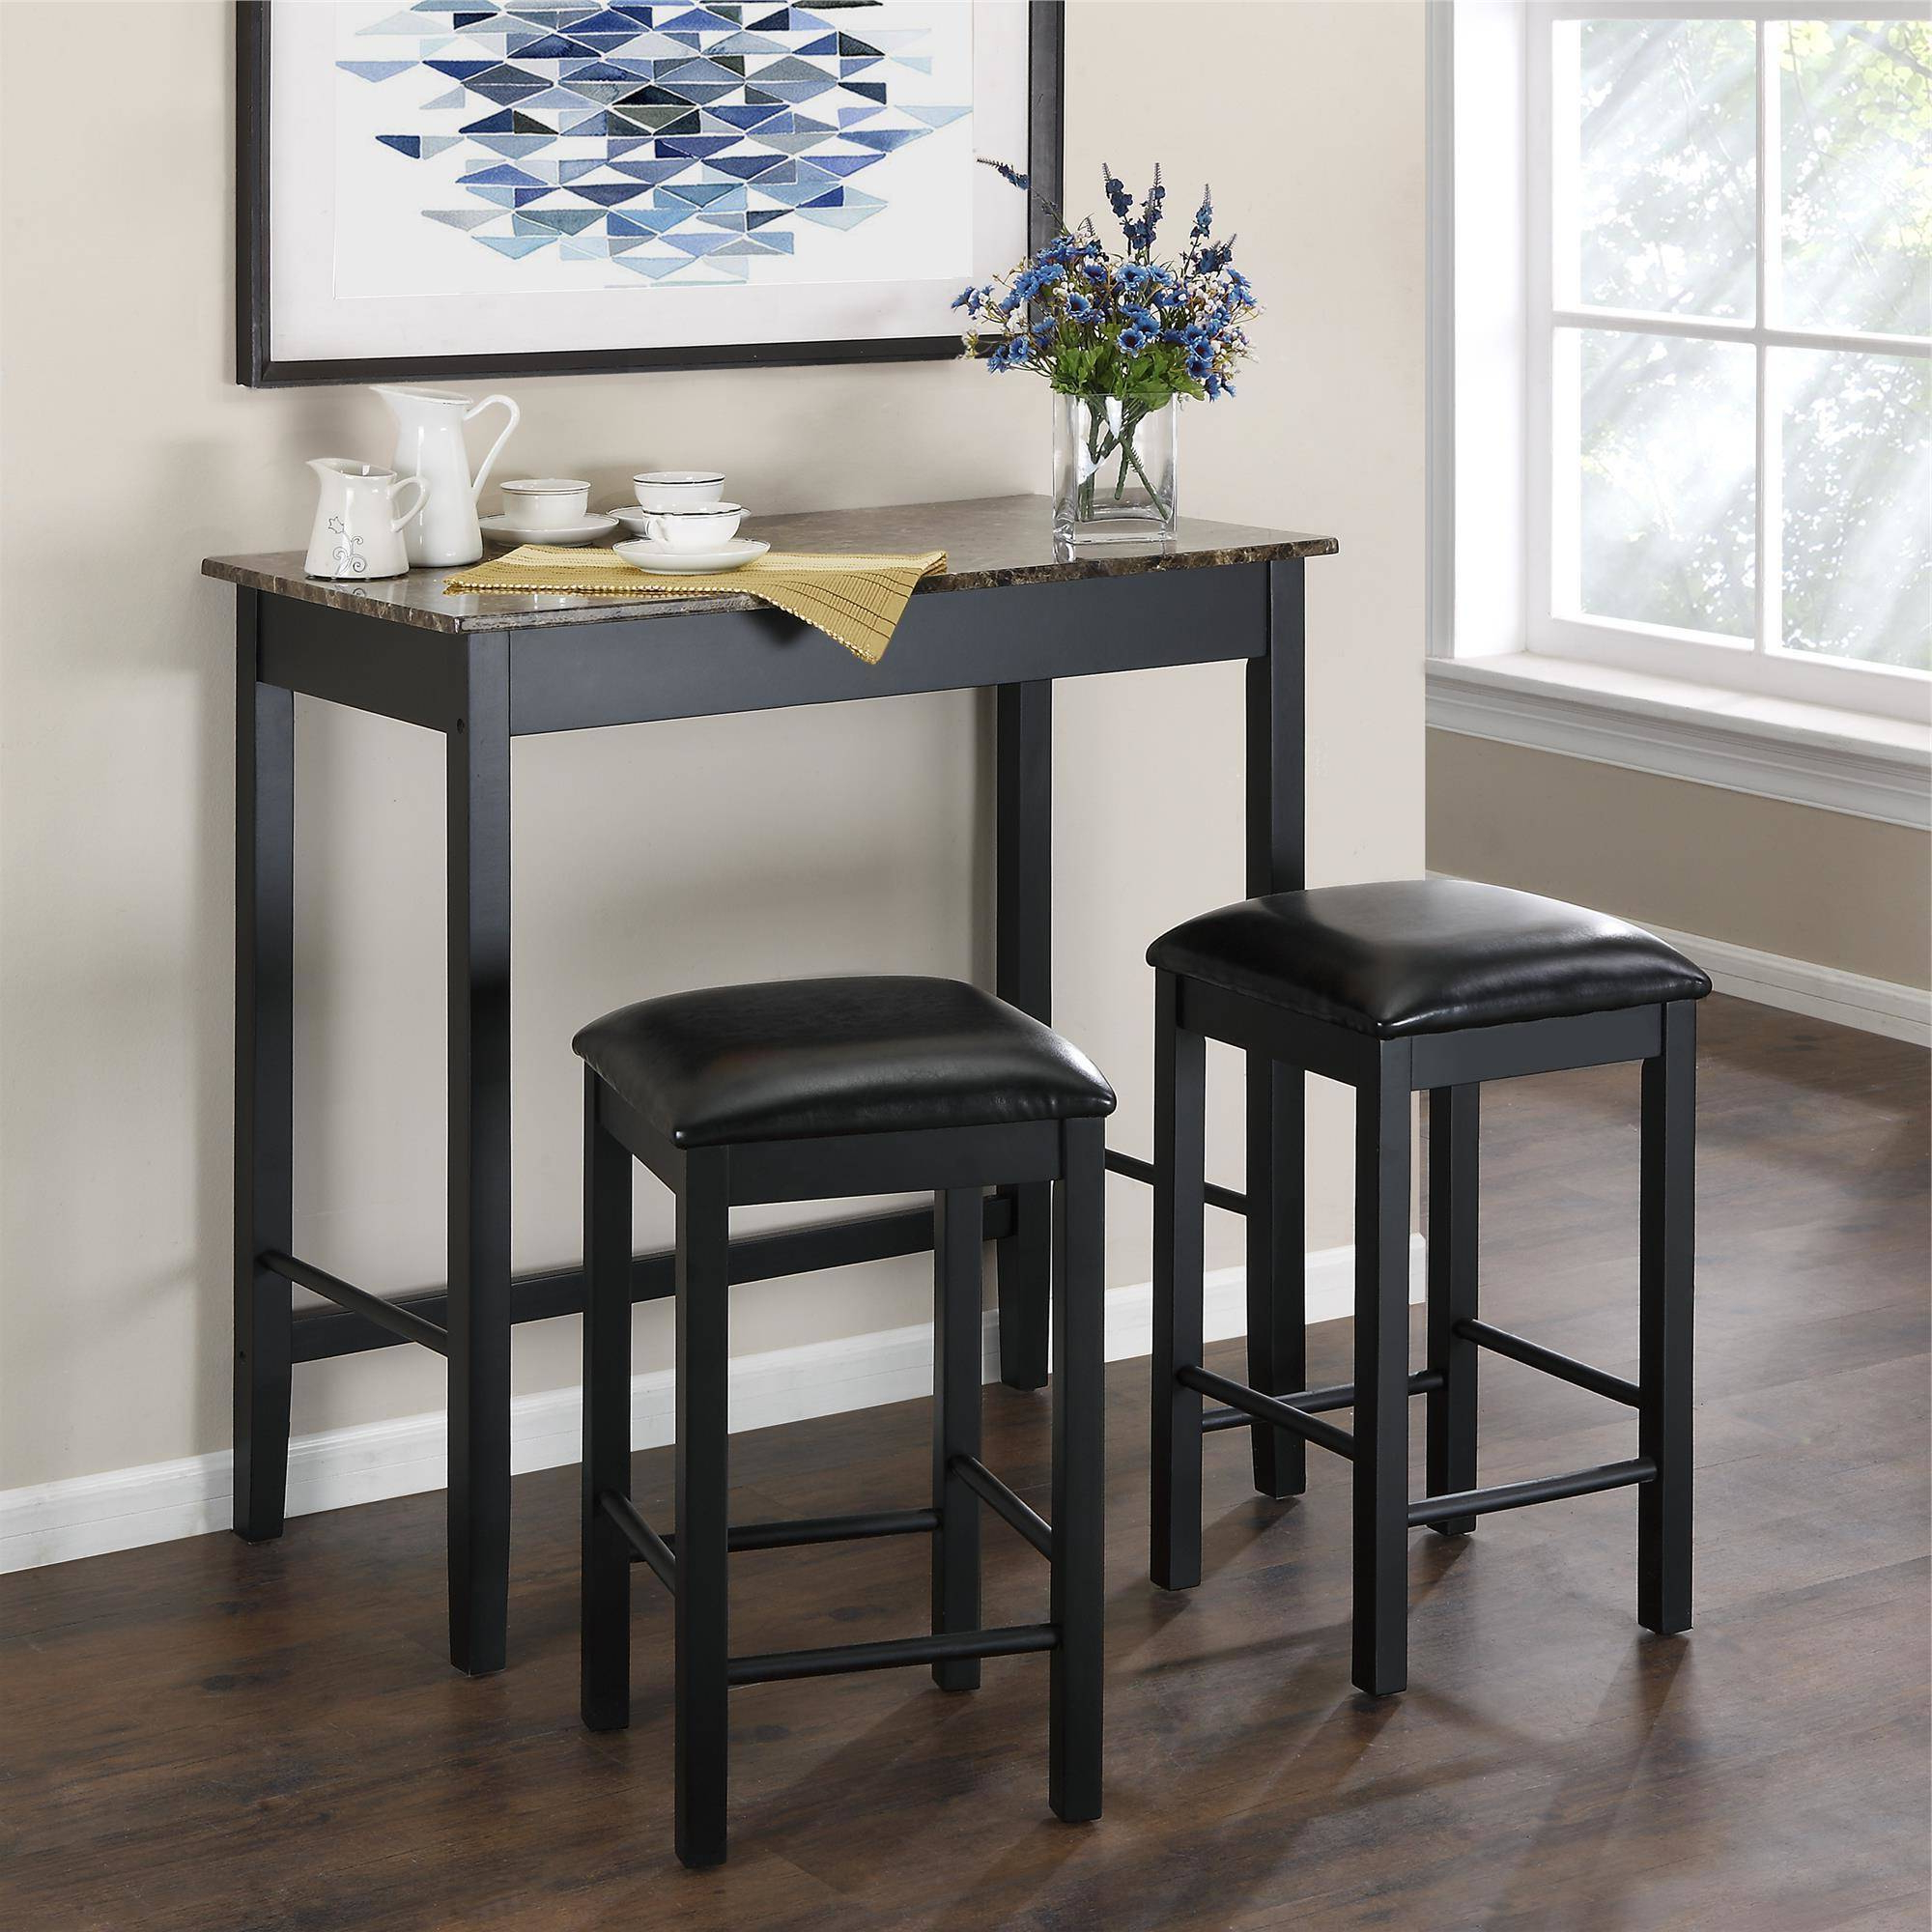 Recent 3 Piece Breakfast Dining Sets In Dorel Living Devyn 3 Piece Faux Marble Pub Dining Set, Black (View 14 of 20)